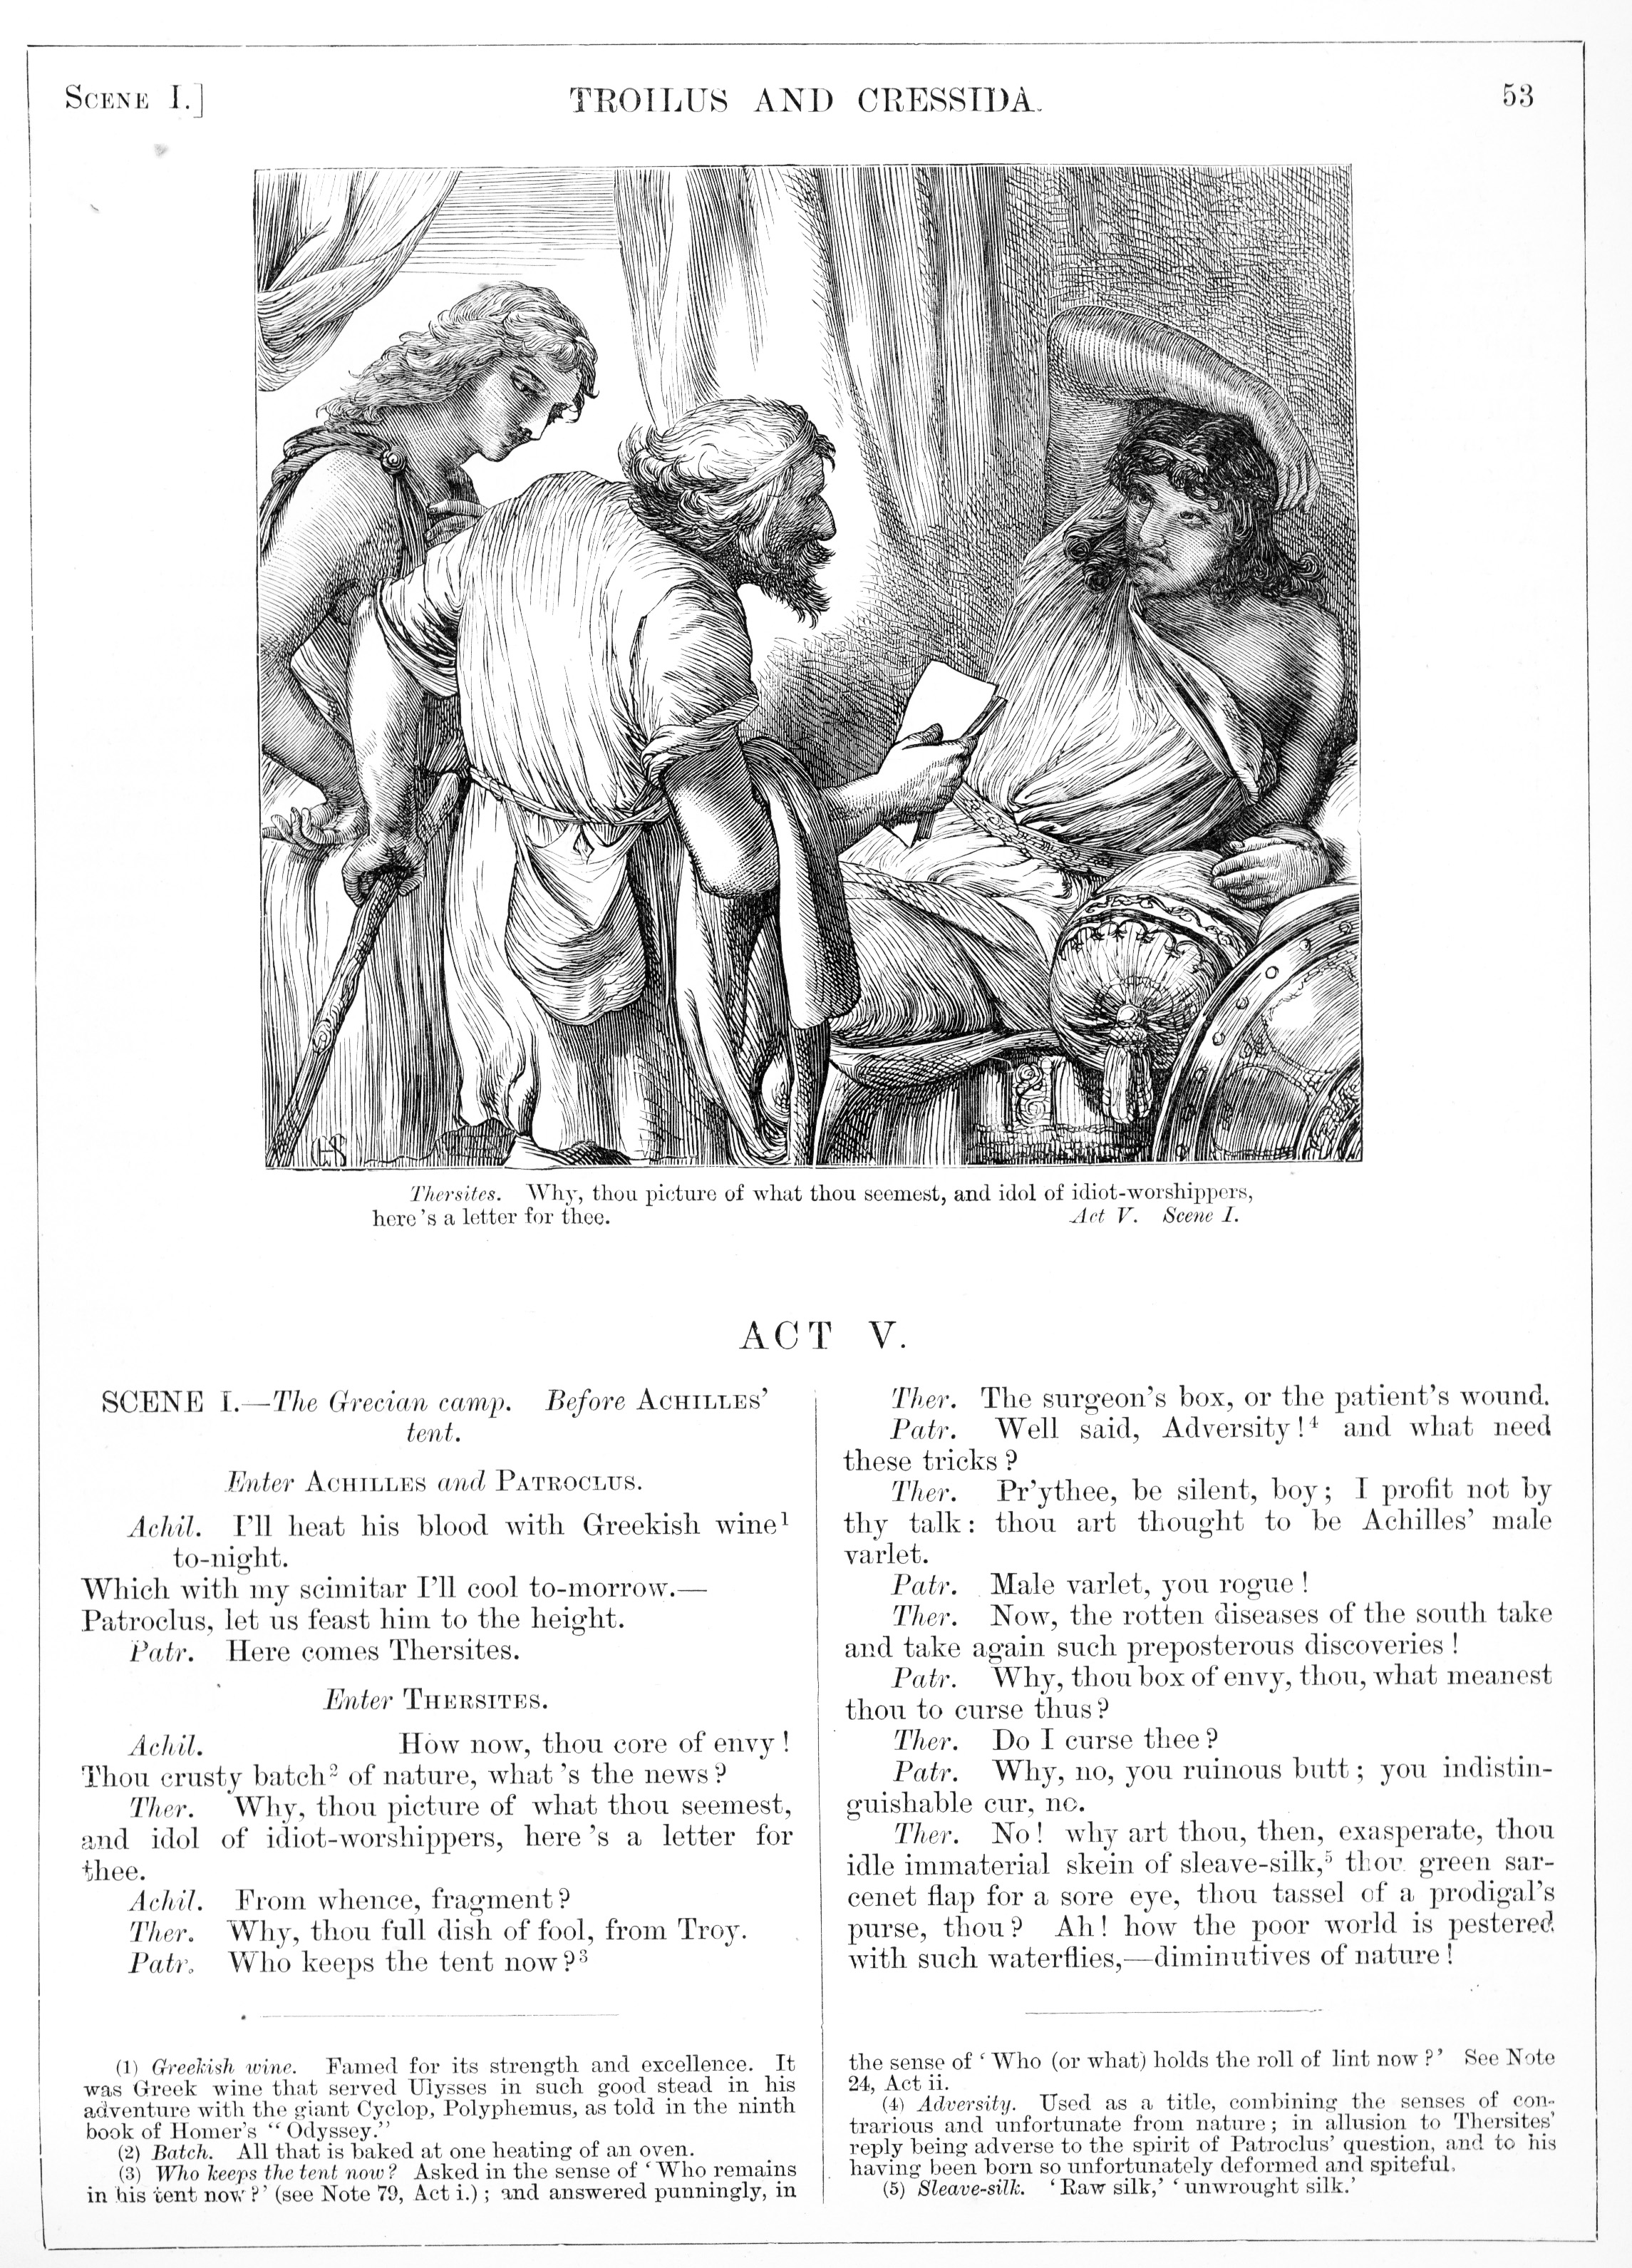 H. C. Selous, Troilus and Cressida, Illustration #15